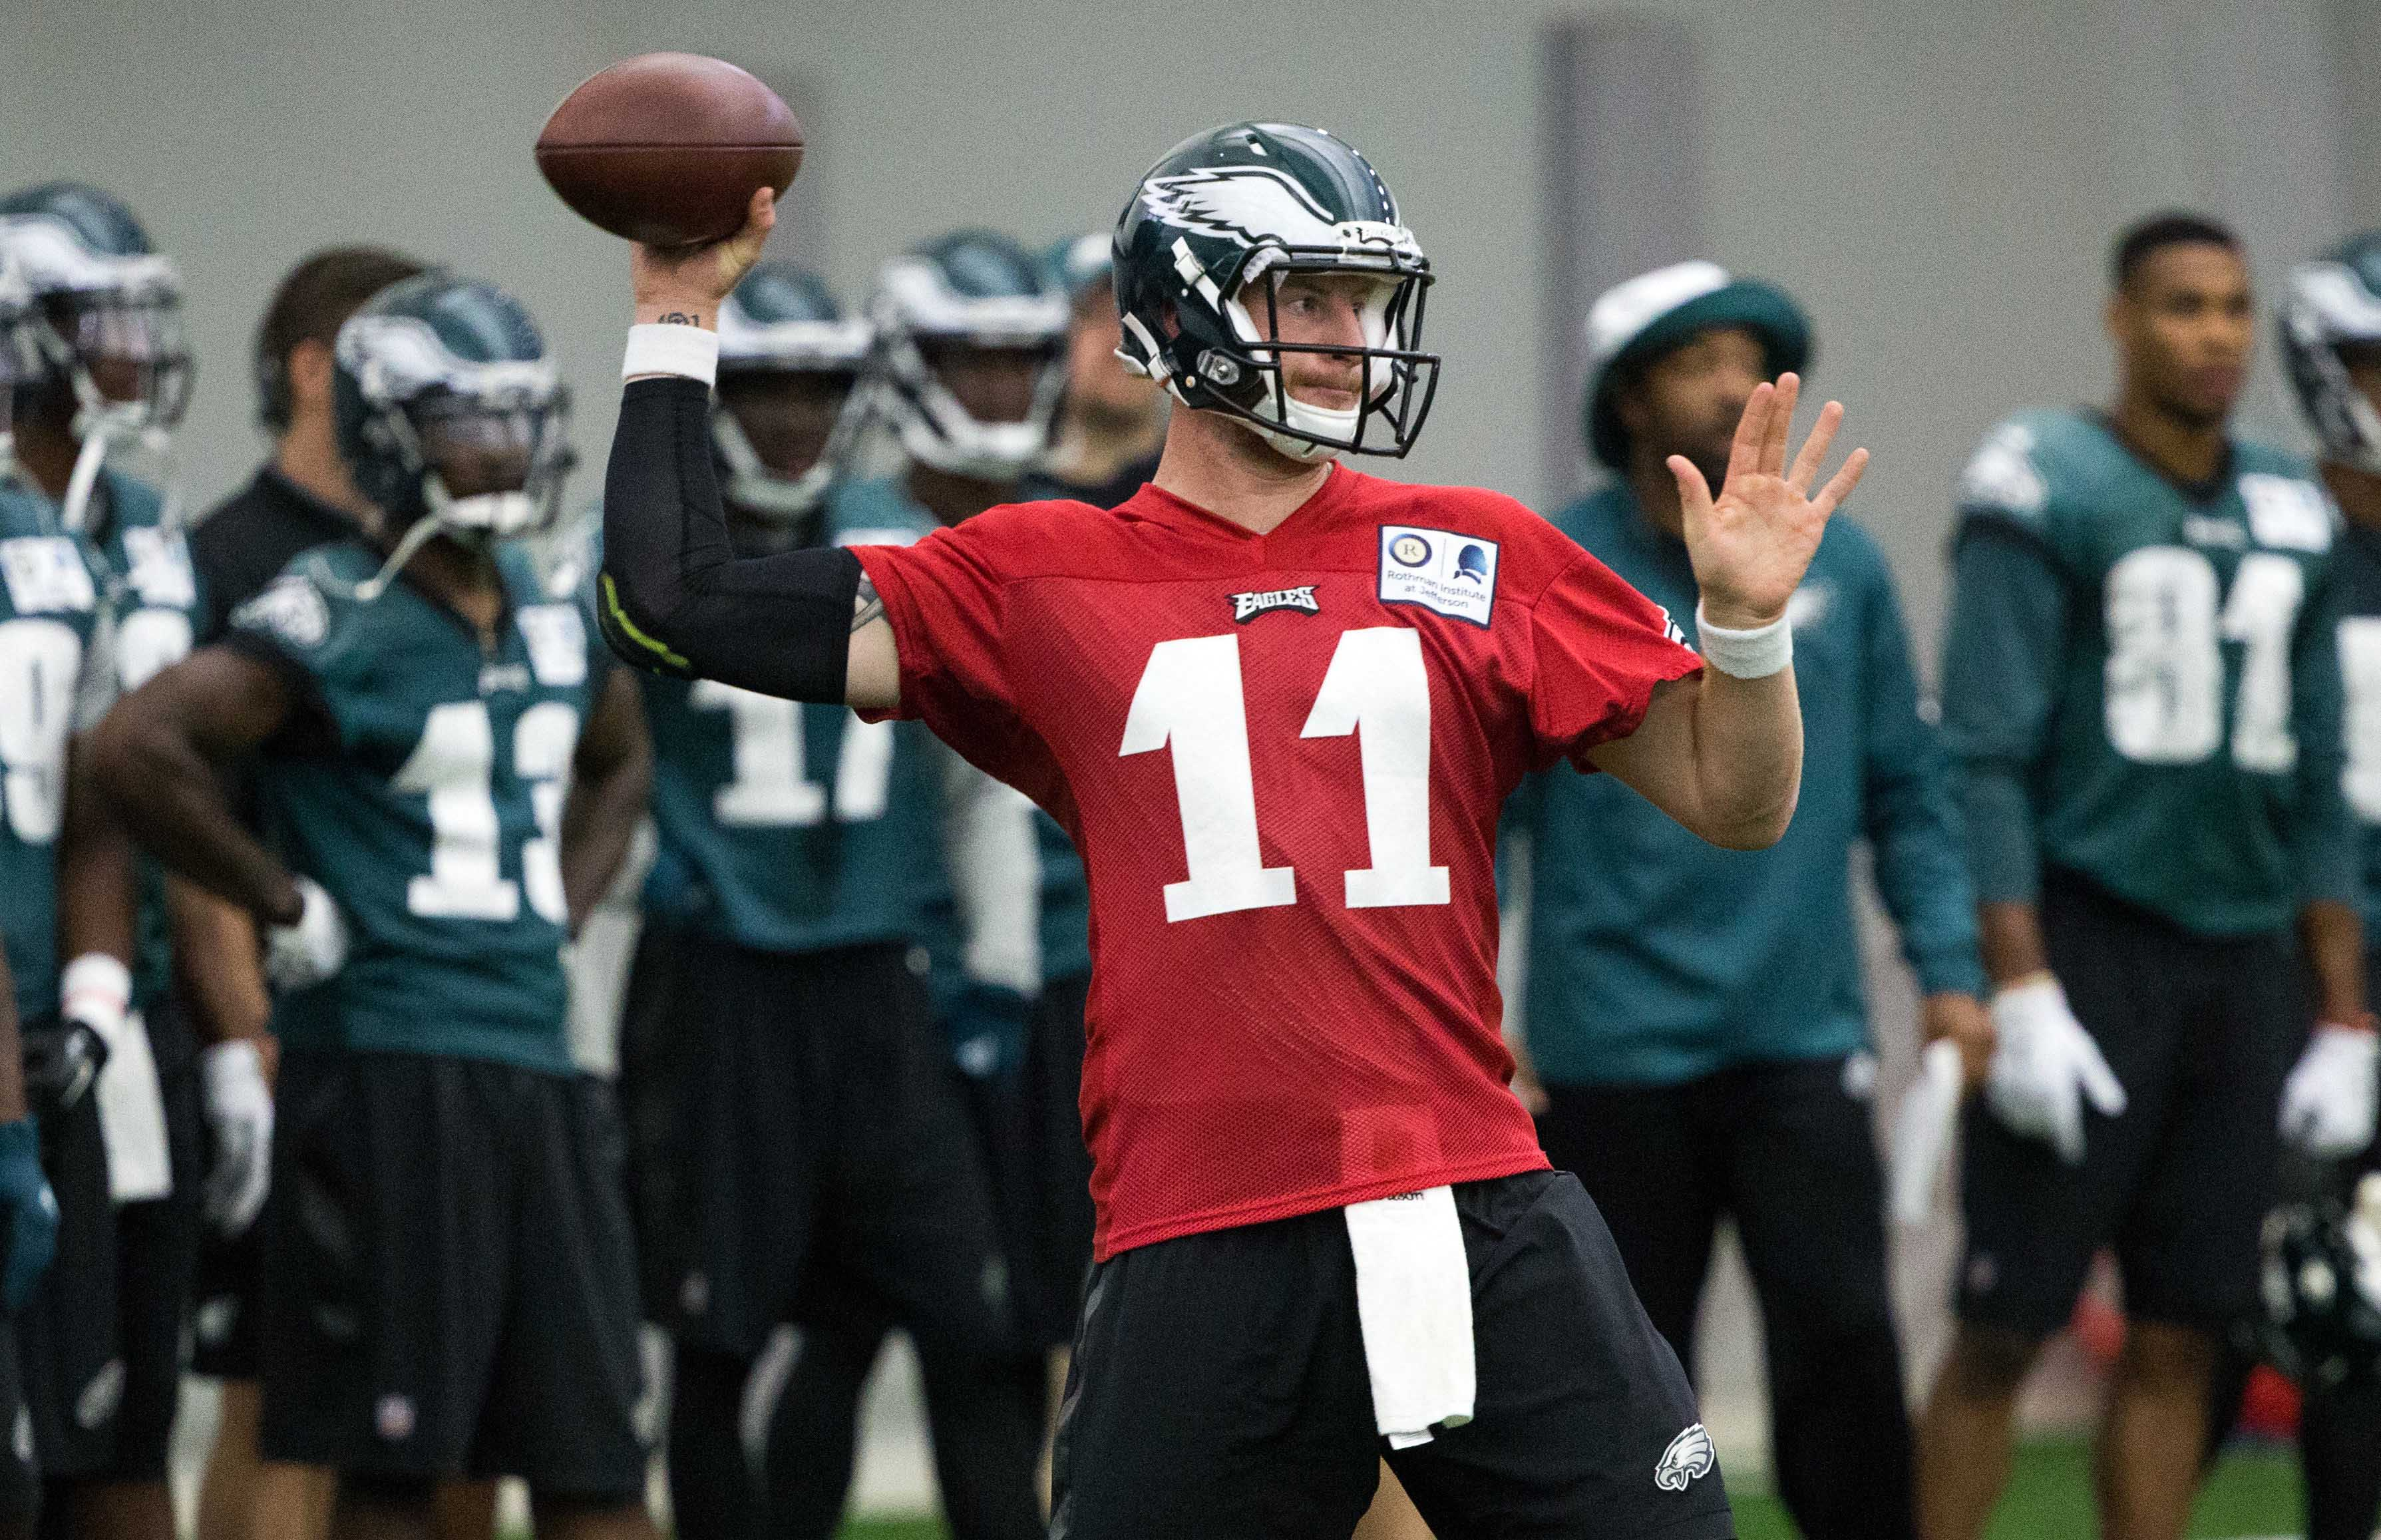 9408303-nfl-philadelphia-eagles-training-camp